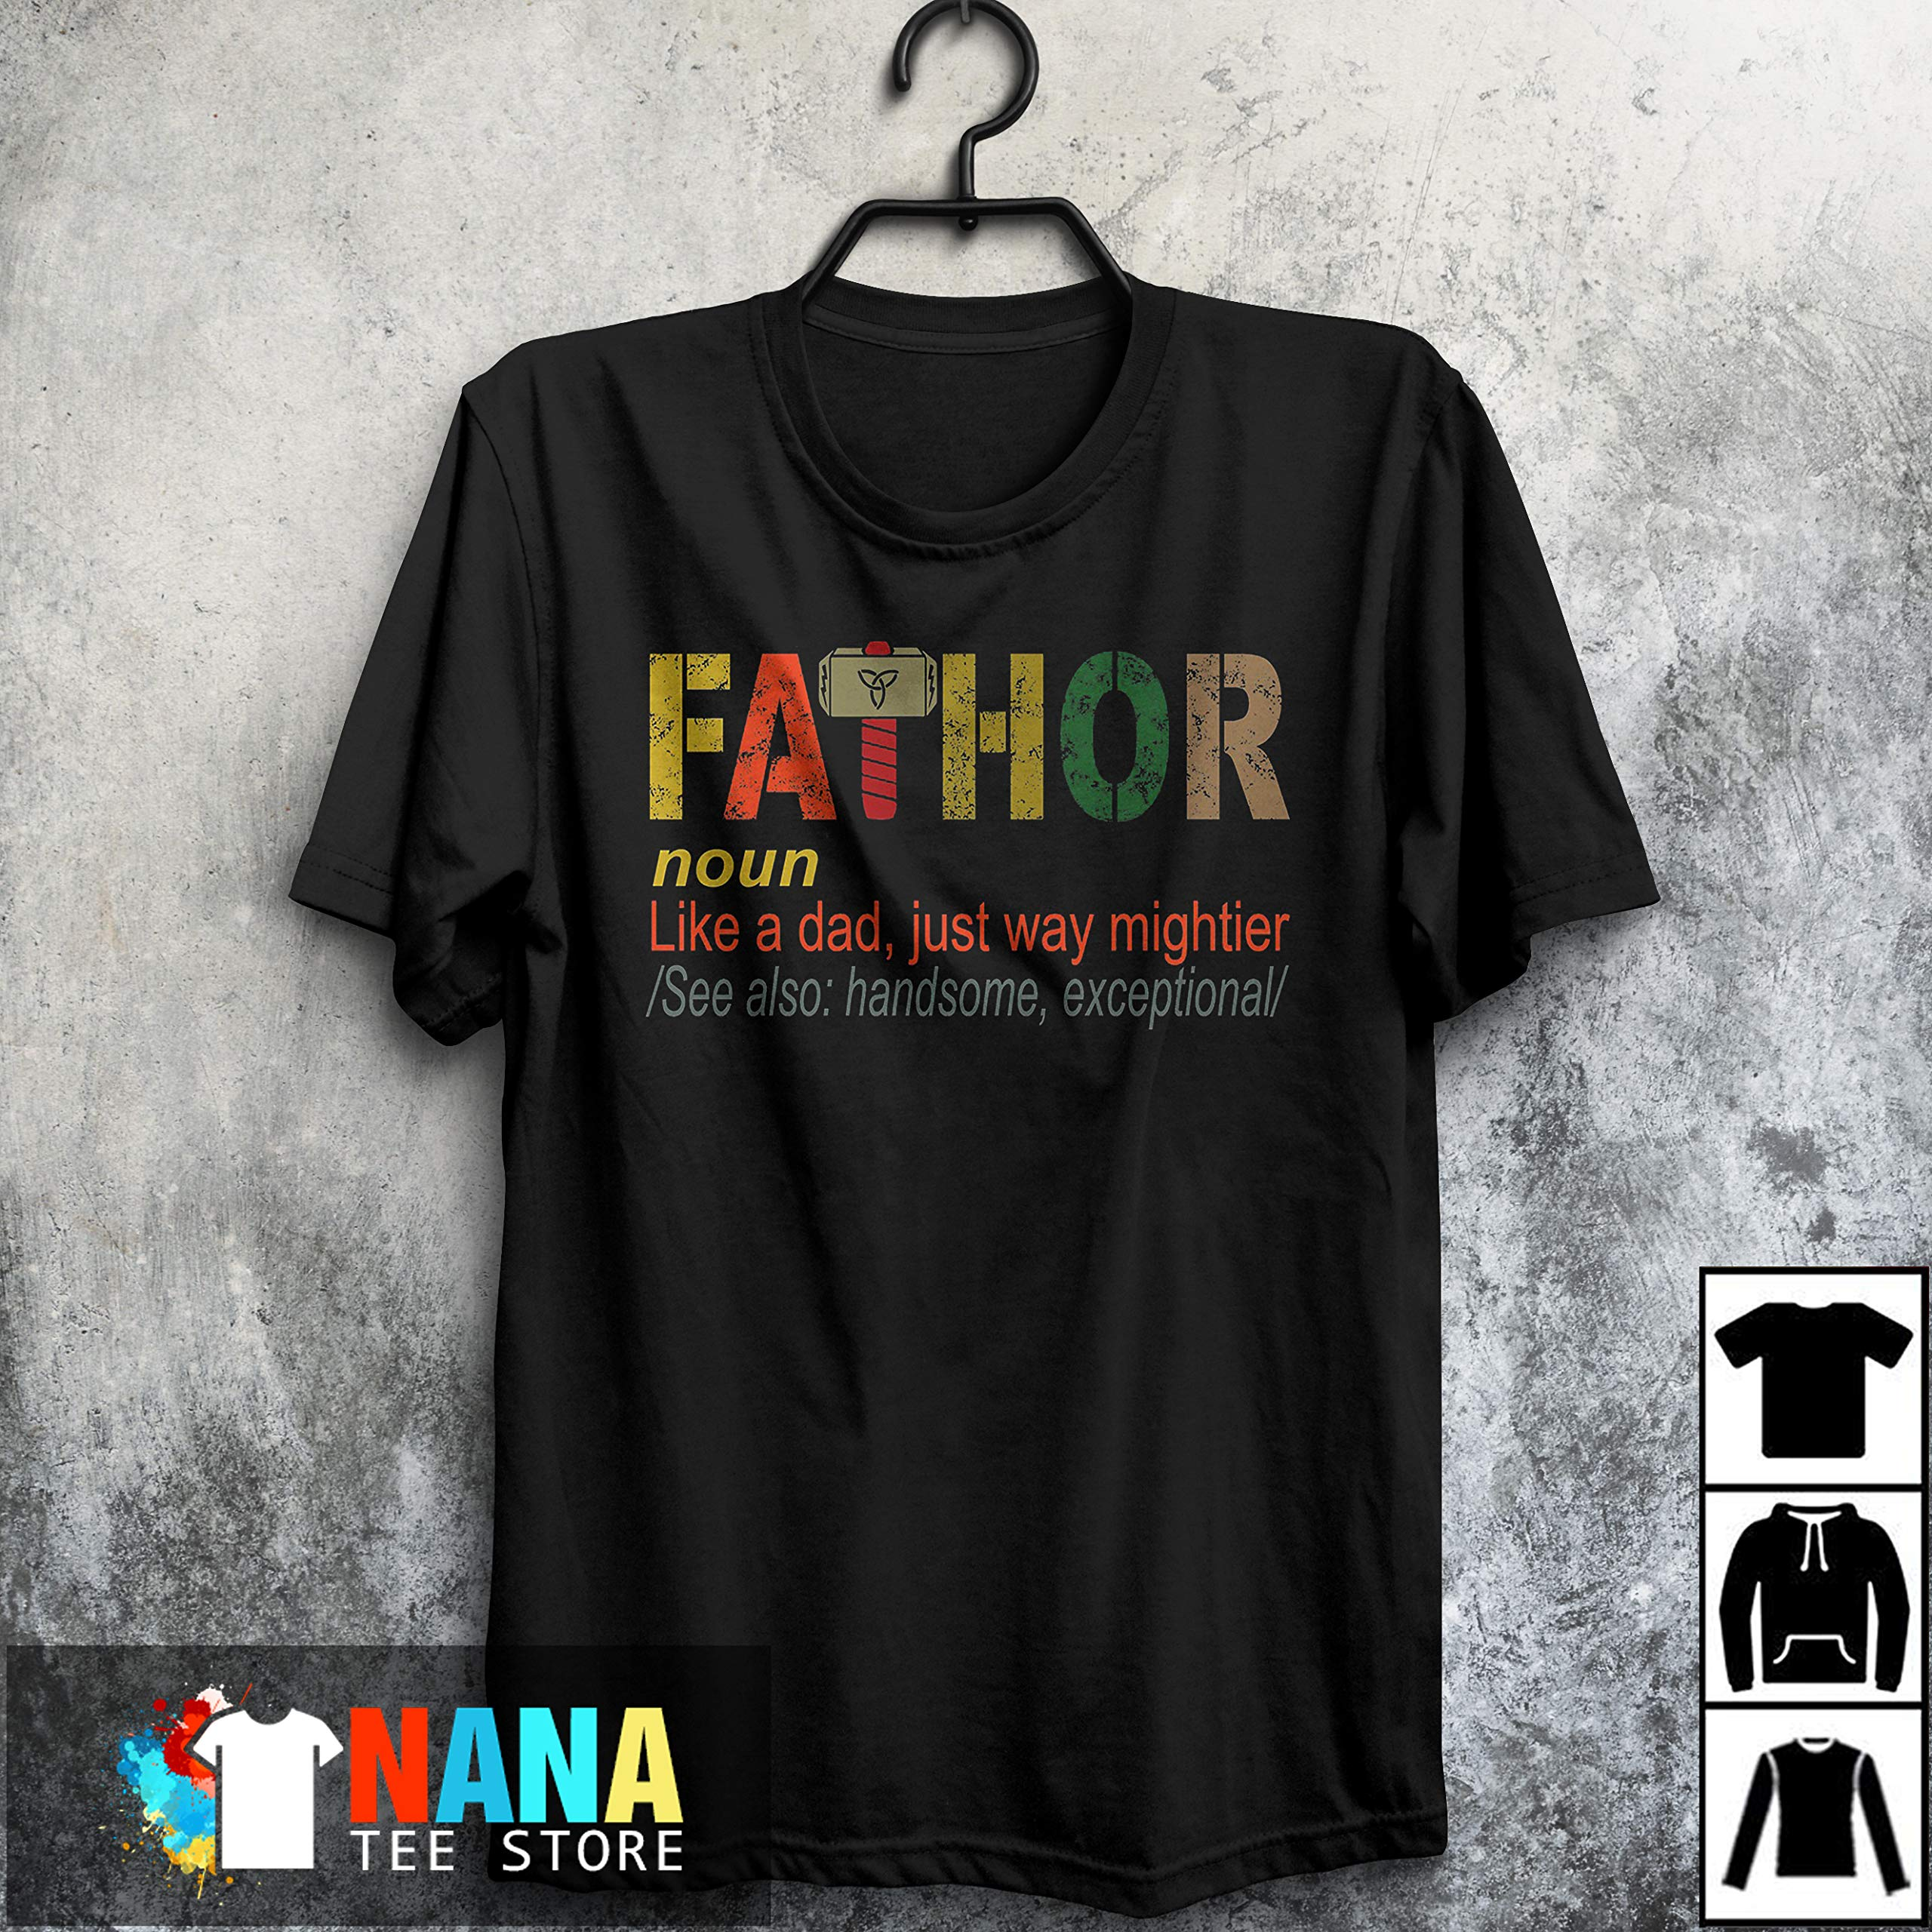 Fathor In Dictionary Like A Normal Dad Just Way Mightier Fathers Day Funny Tshirt Long Tsh